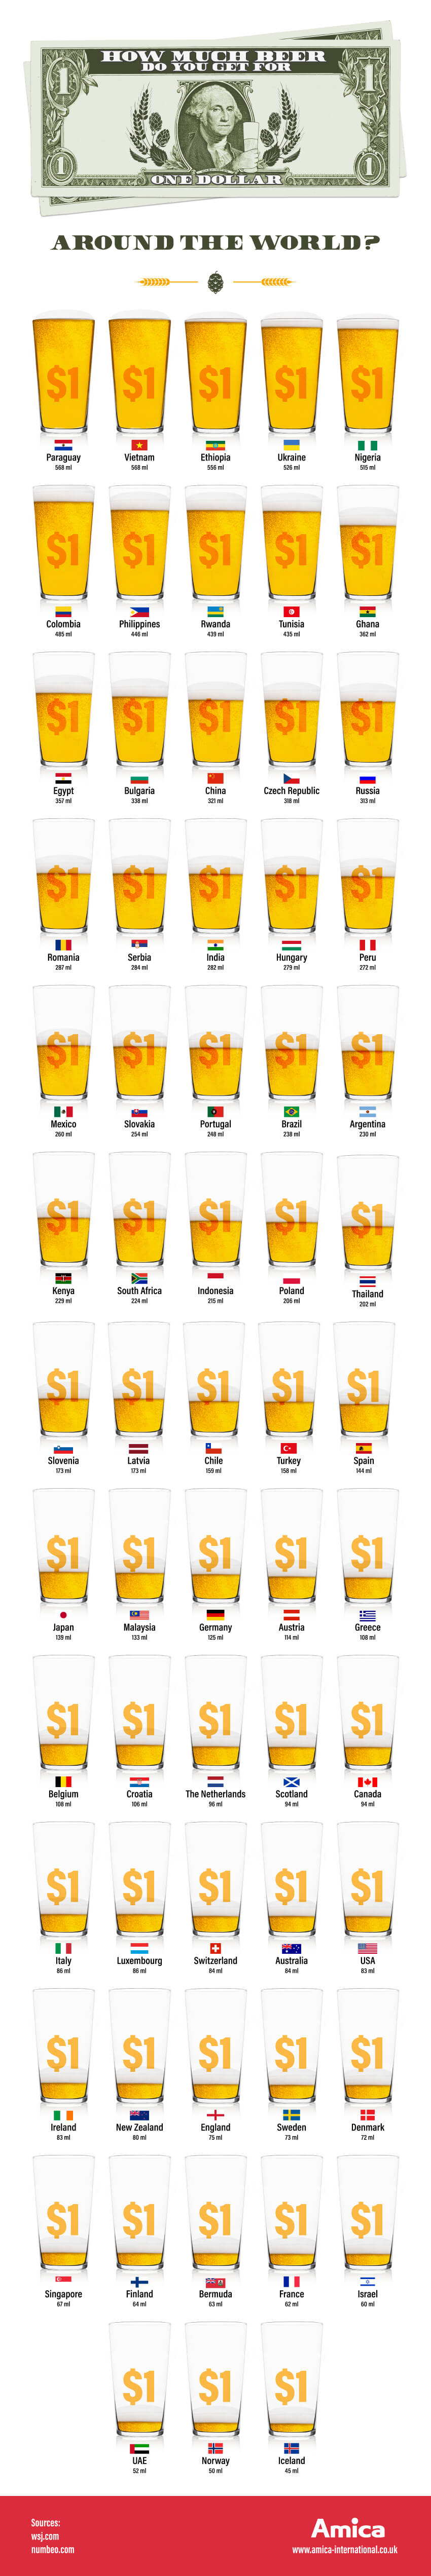 beer 1 1 How Much Beer Would You Get For $1 Around The World